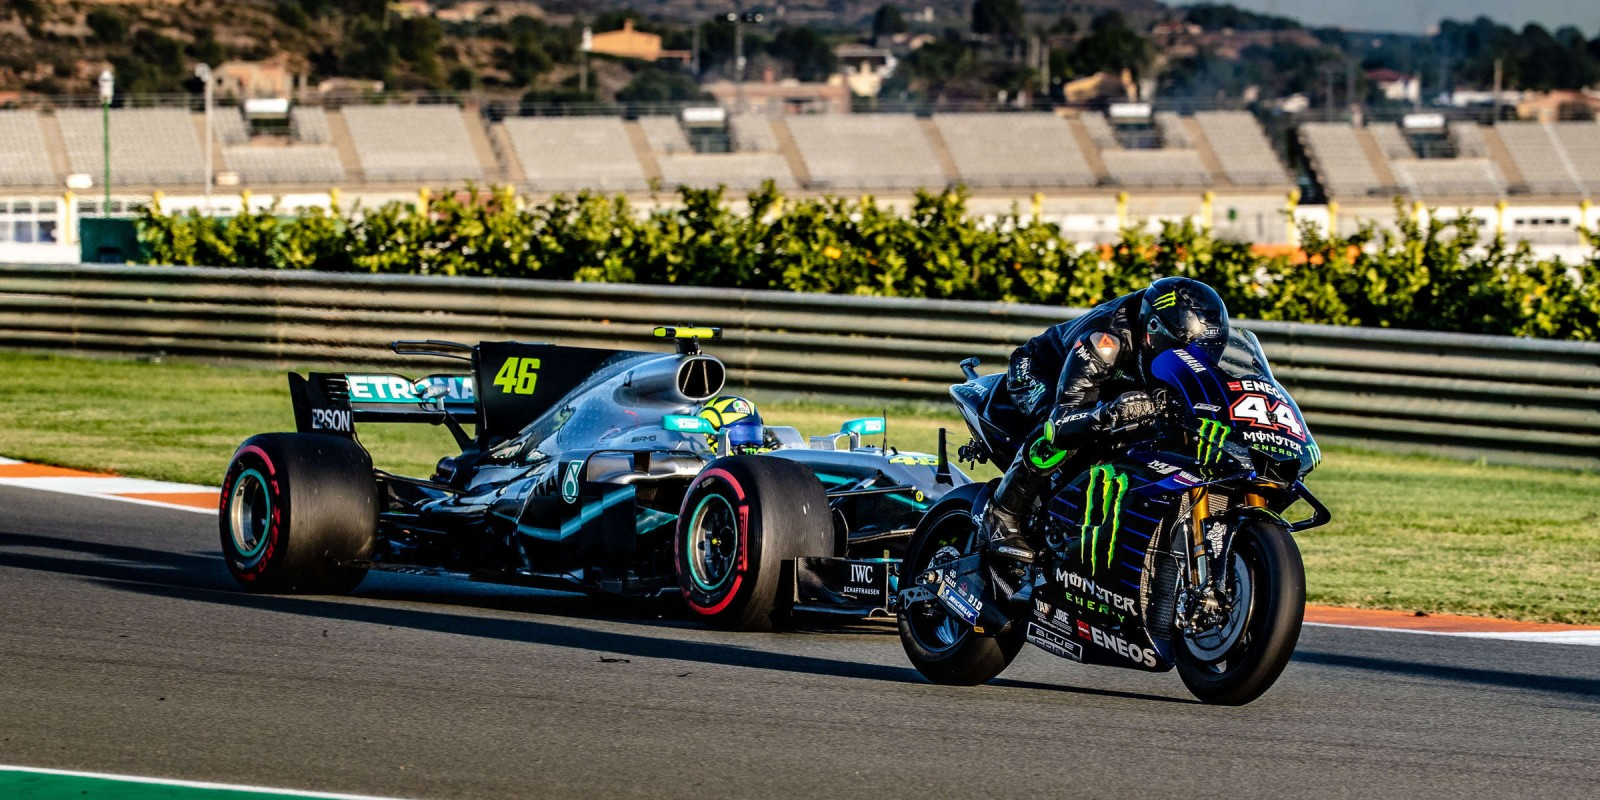 Hamilton & Rossi swap machinery in Valencia, Spain